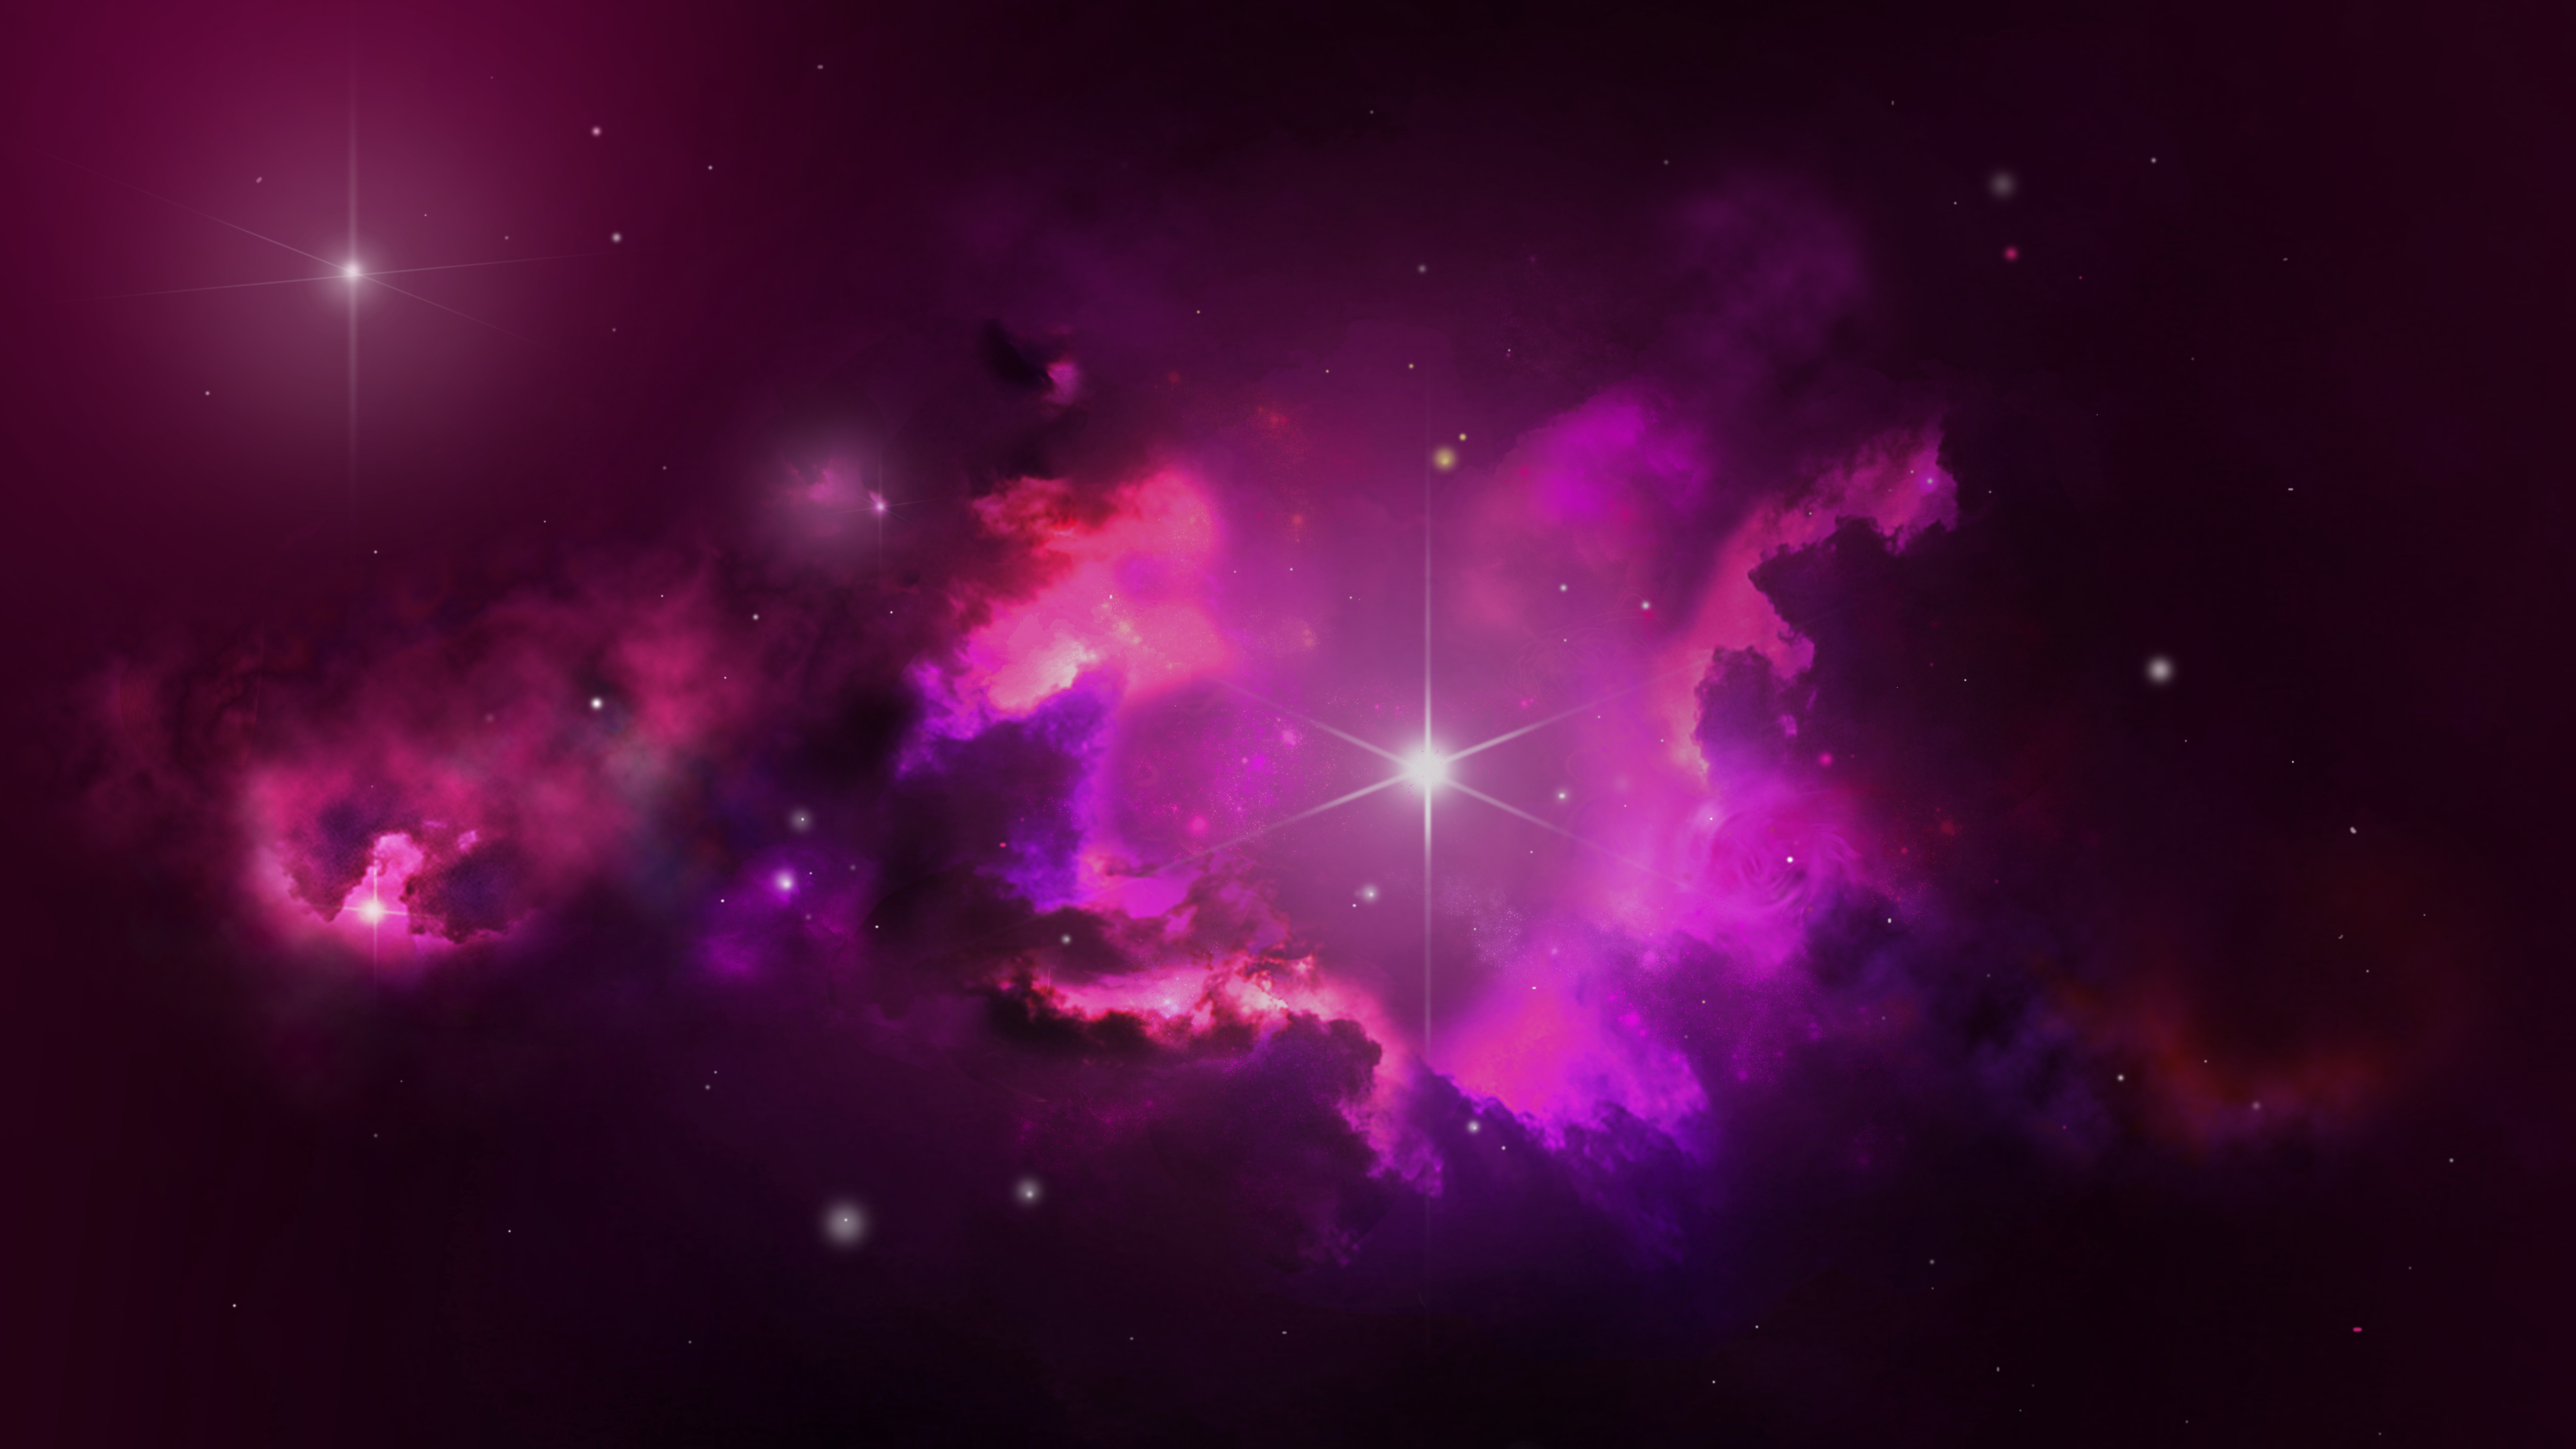 73946 download wallpaper Universe, Glow, Galaxy screensavers and pictures for free